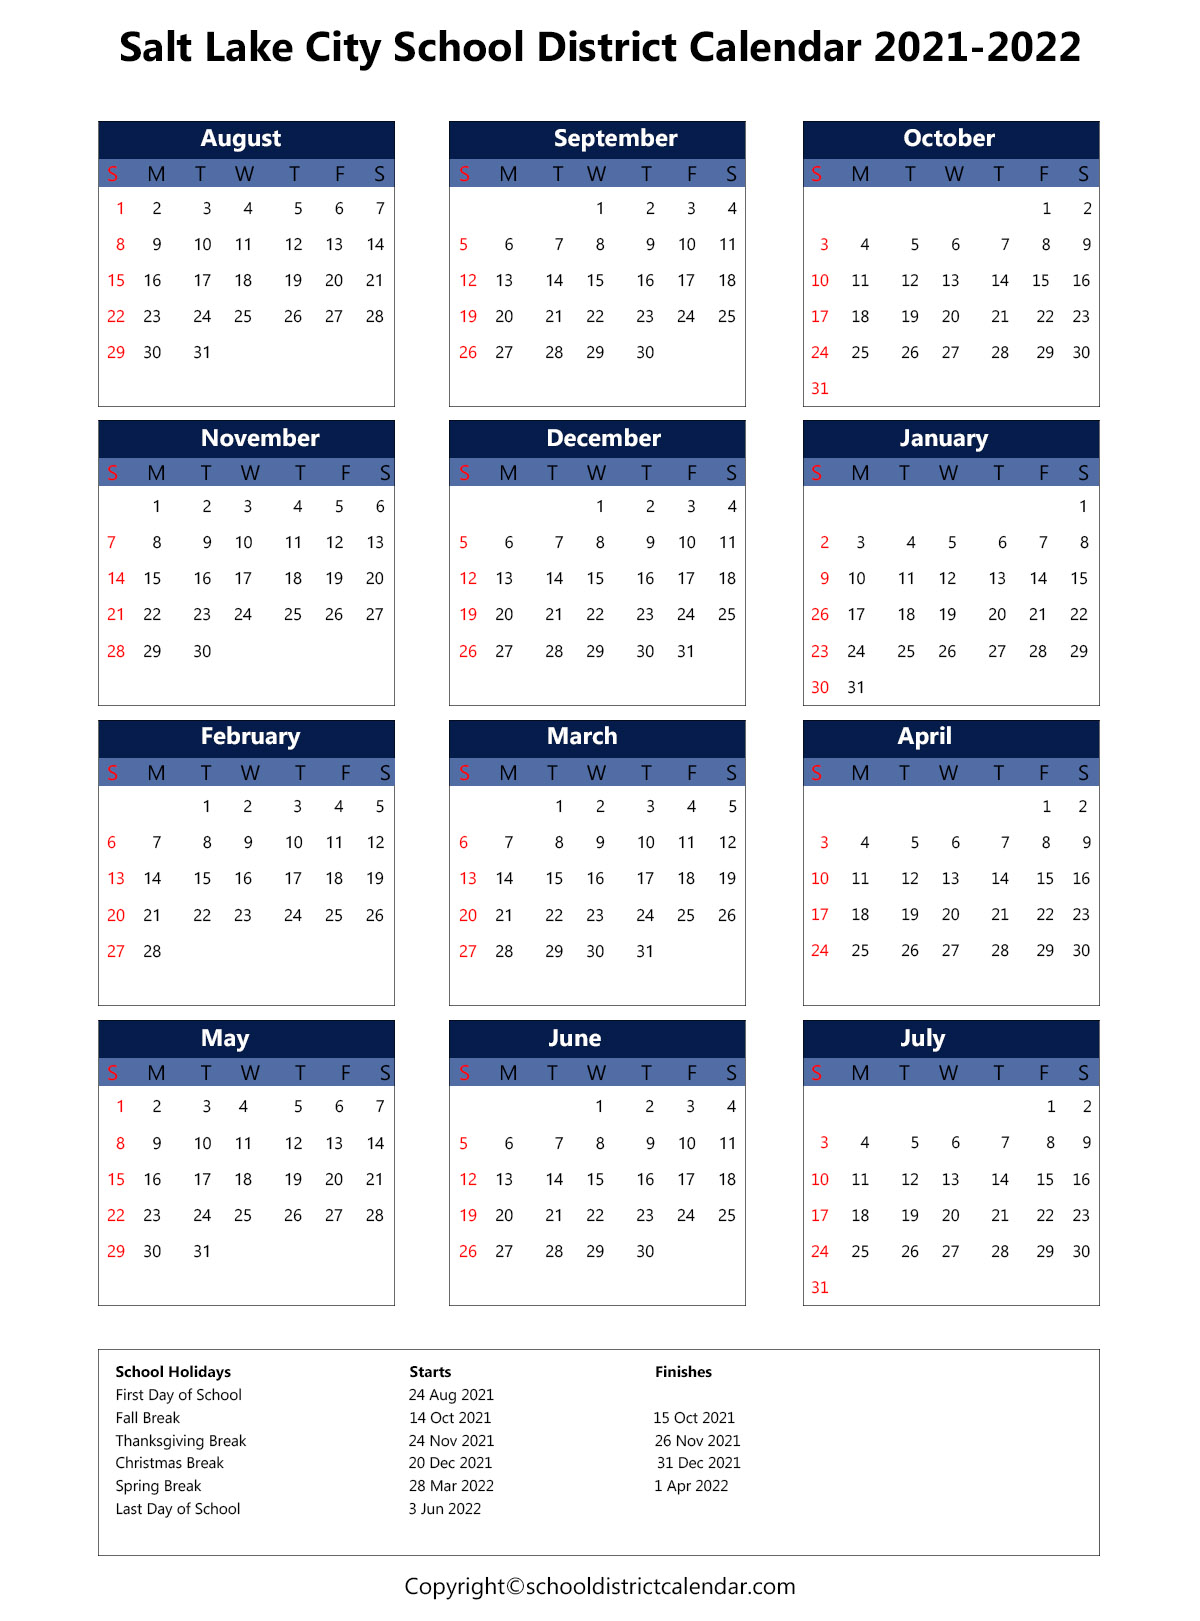 Salt Lake City School District Calendar 2021